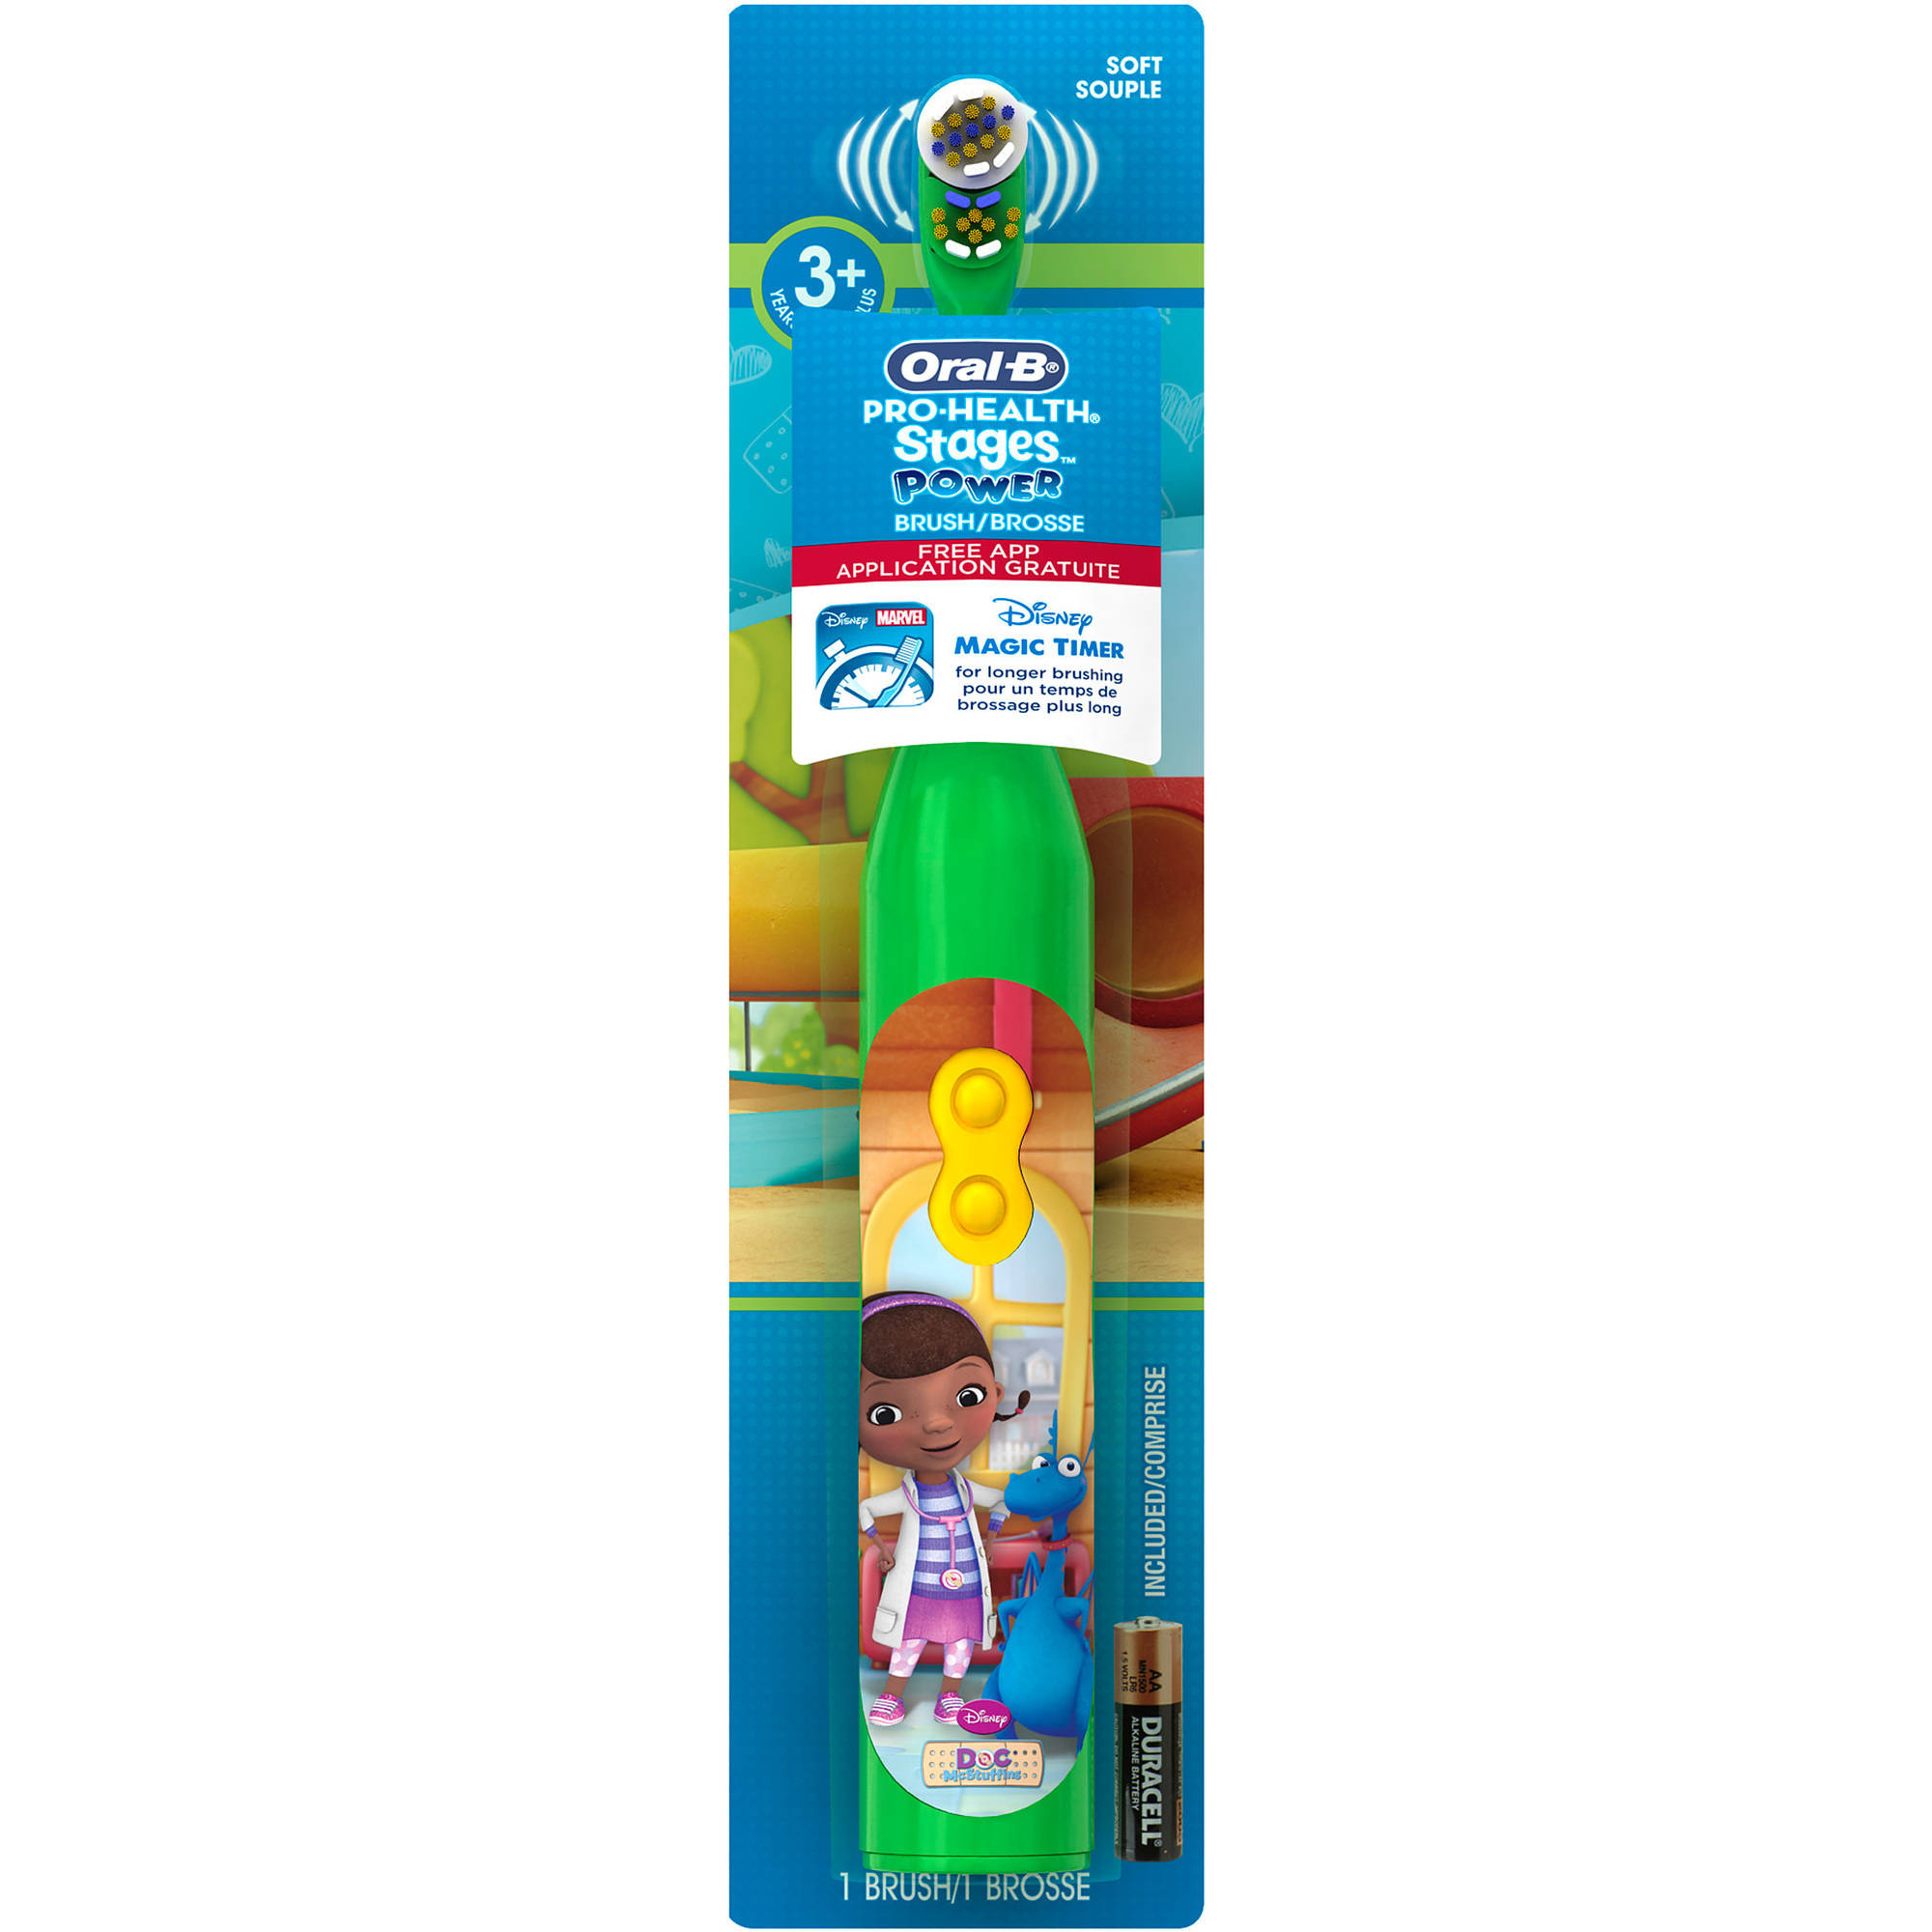 Oral-B Pro-Health Stages Disney Doc McStuffins Battery Toothbrush for Kids with FREE Disney Magic Timer App